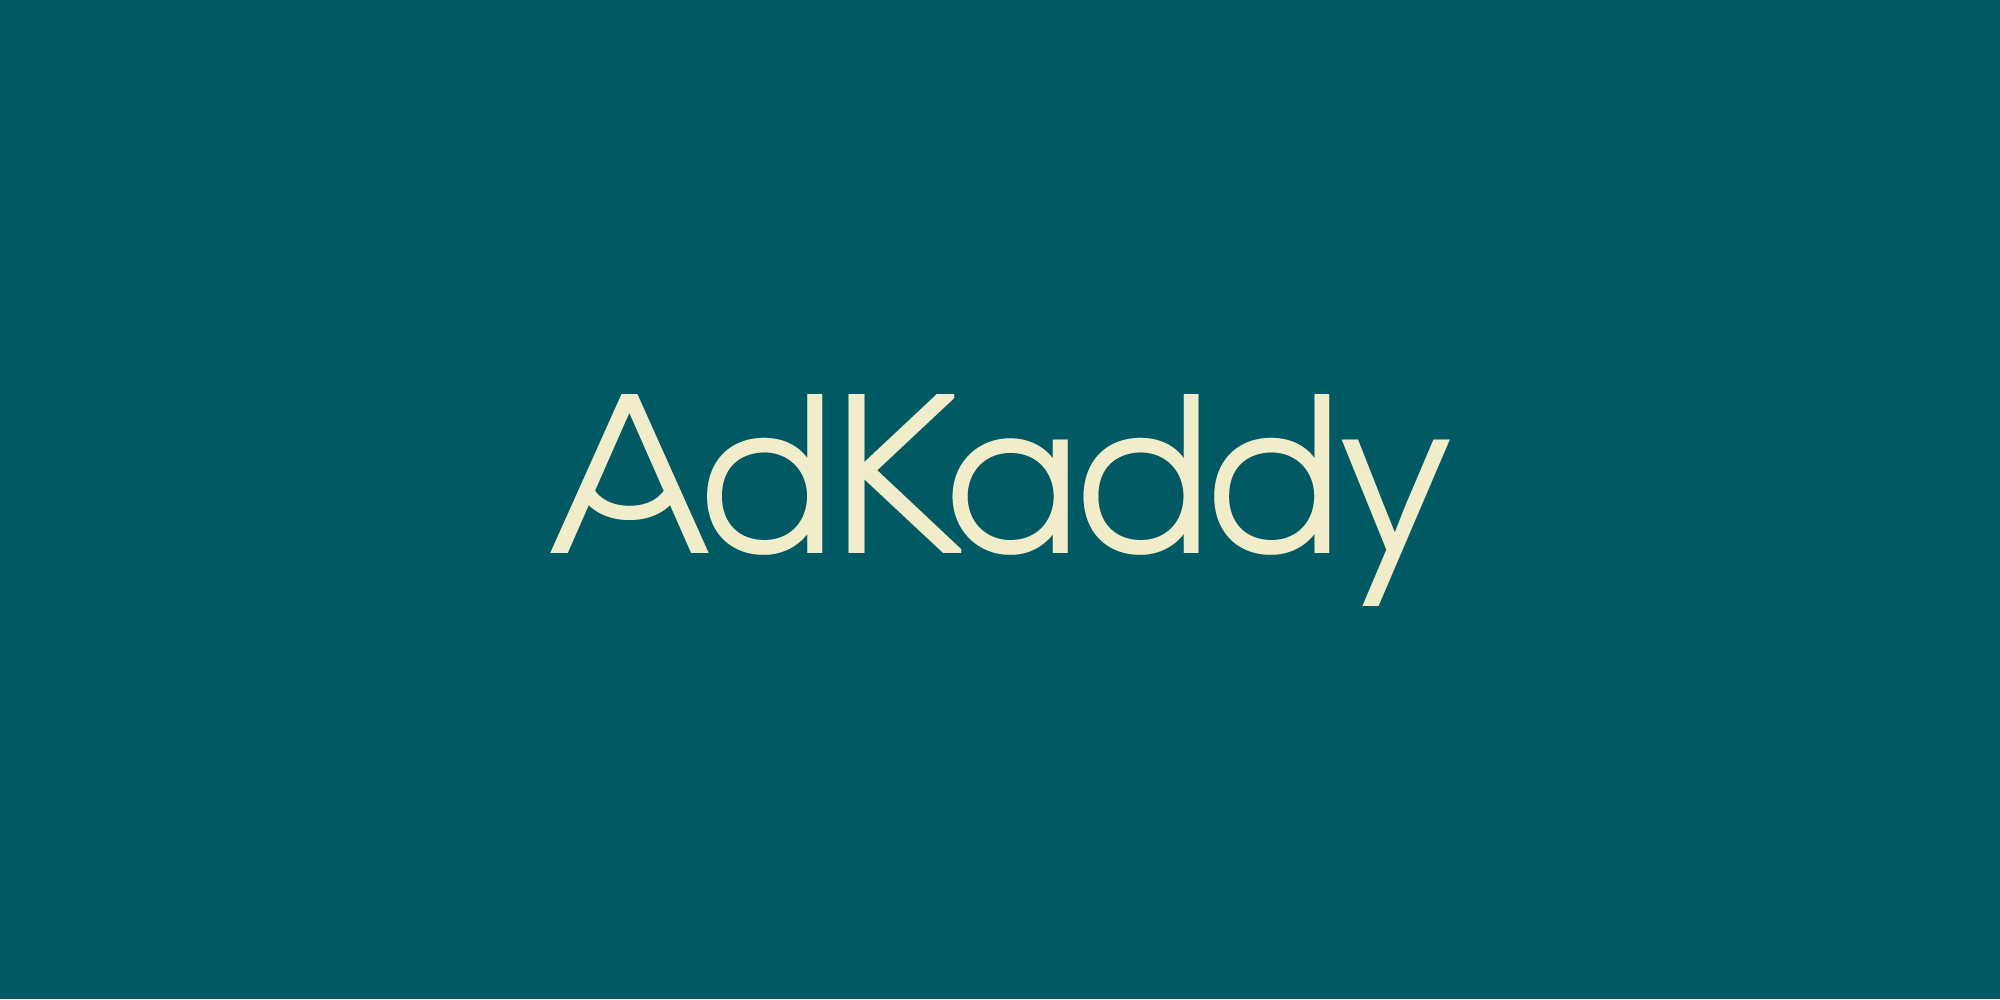 AdKaddy-5.png